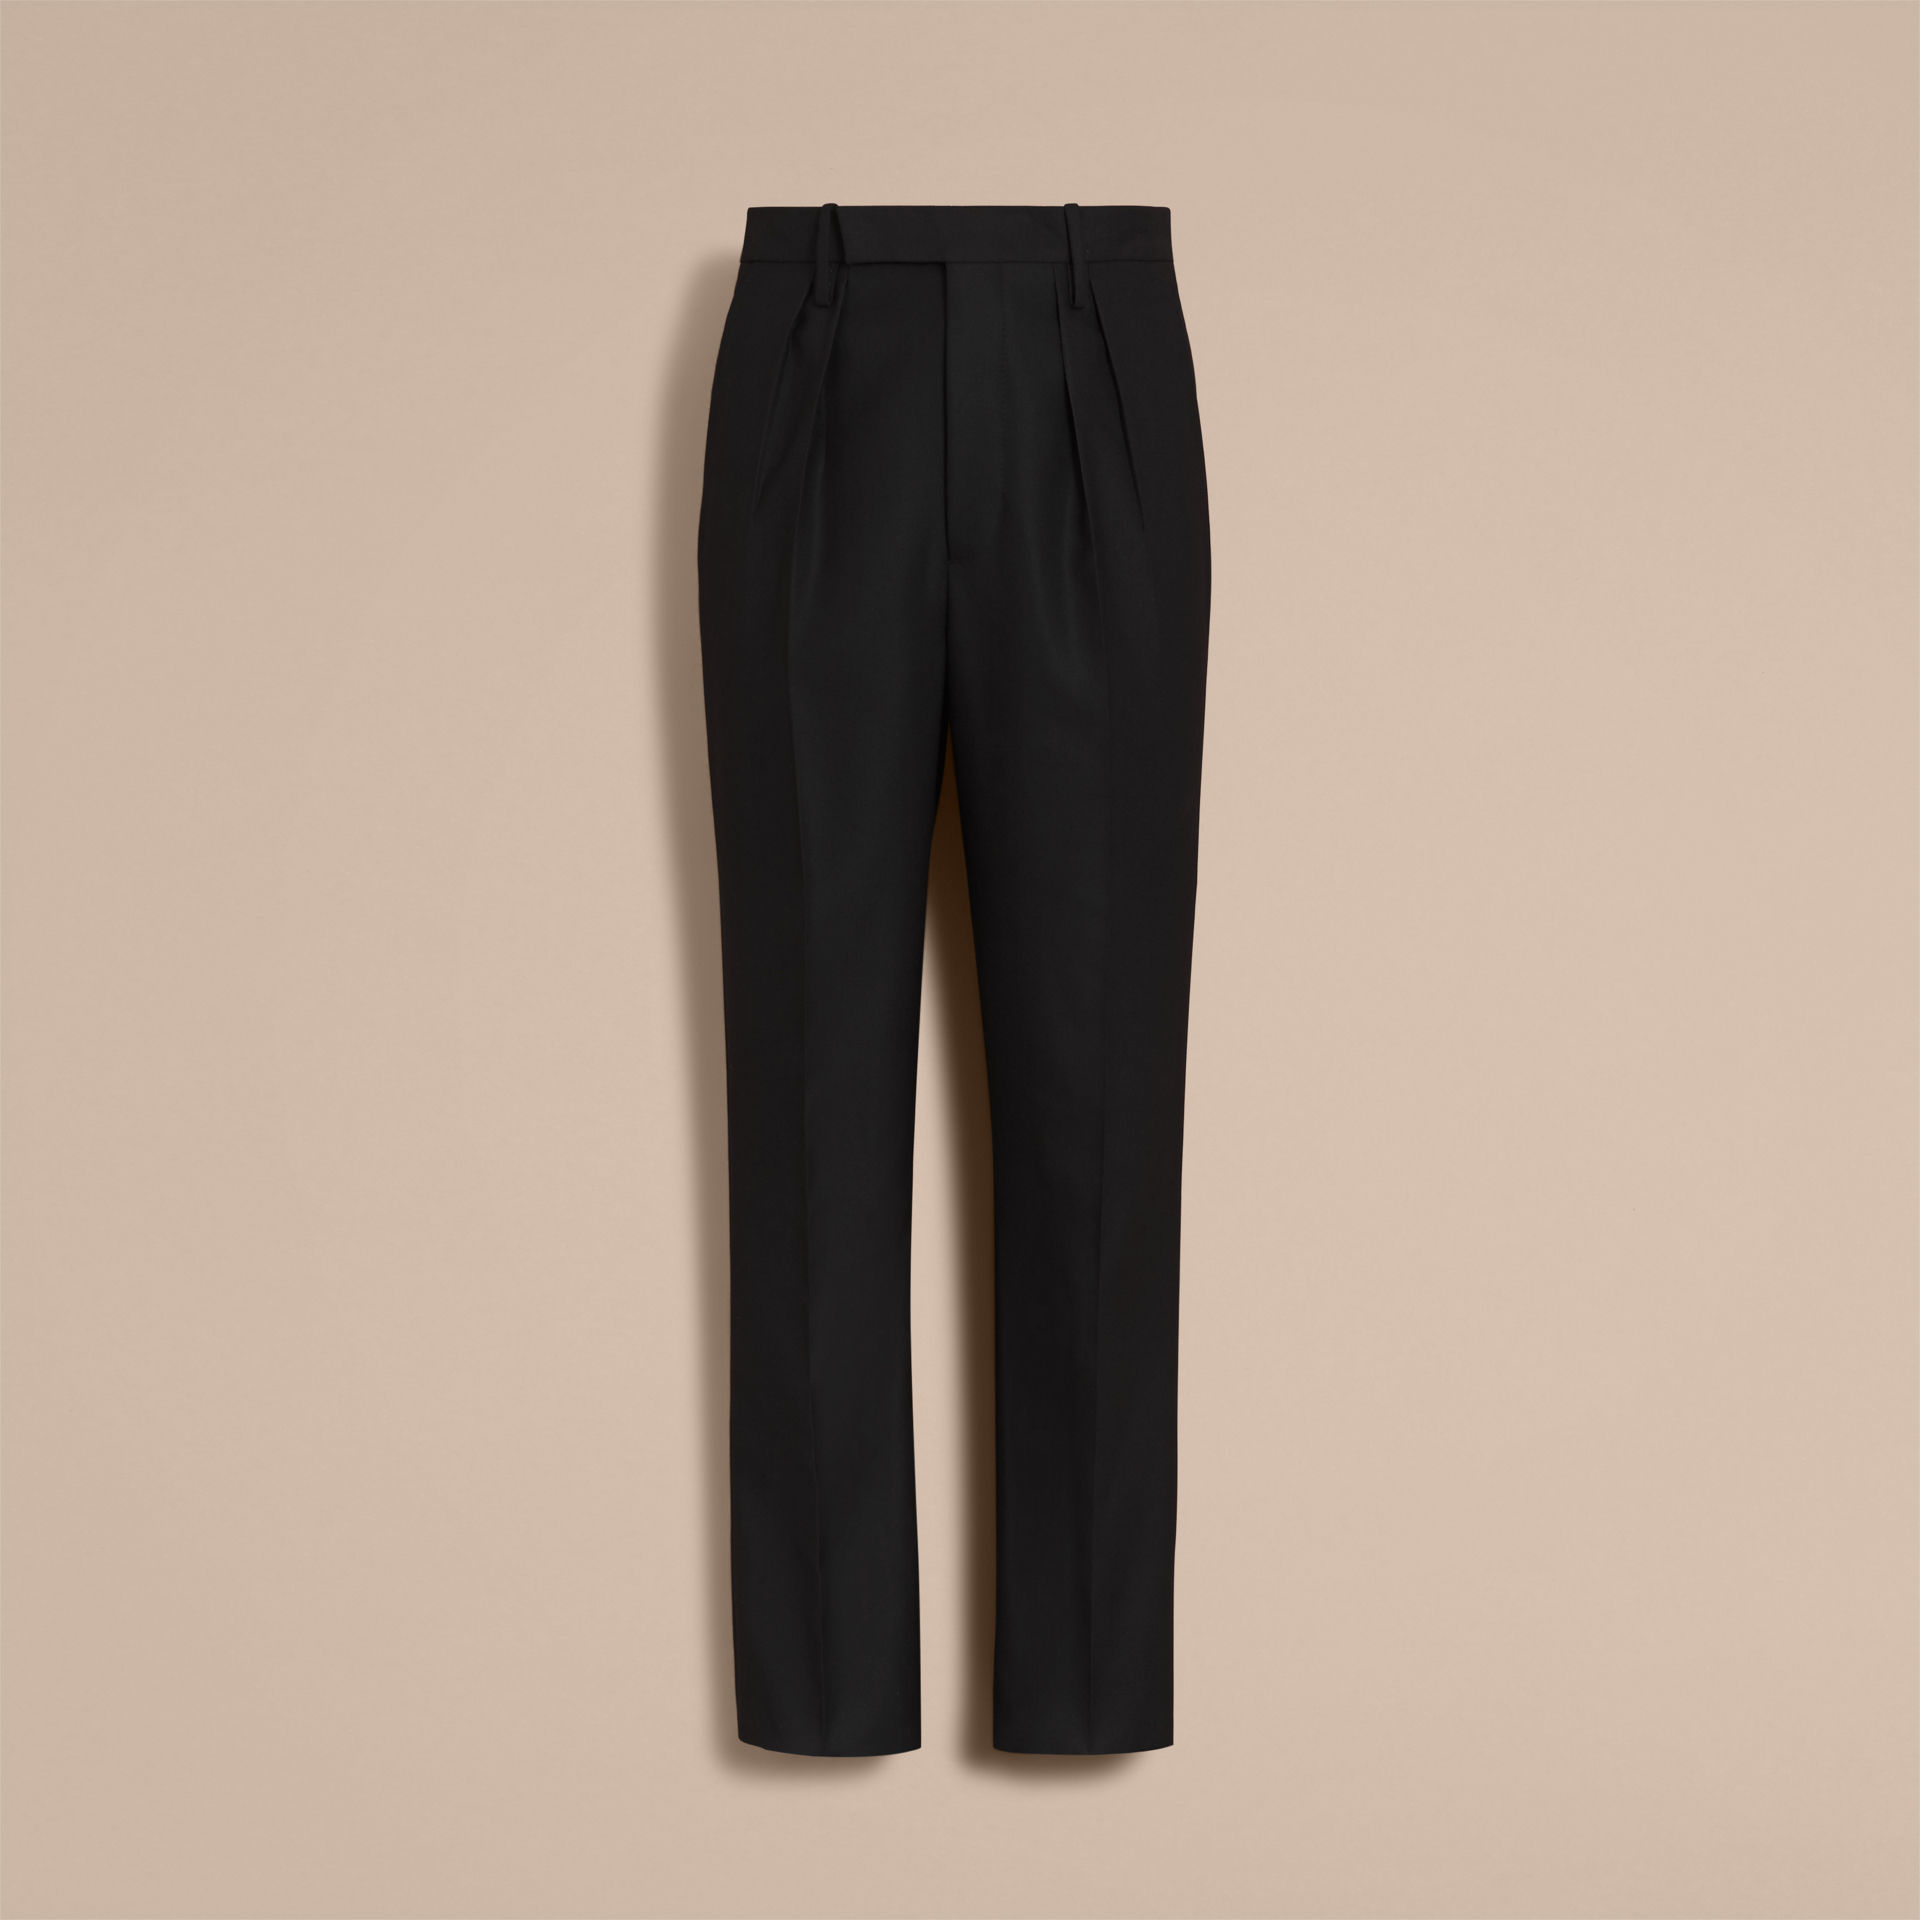 Burberry Black English Wool Mohair High-waist Tailored Trousers